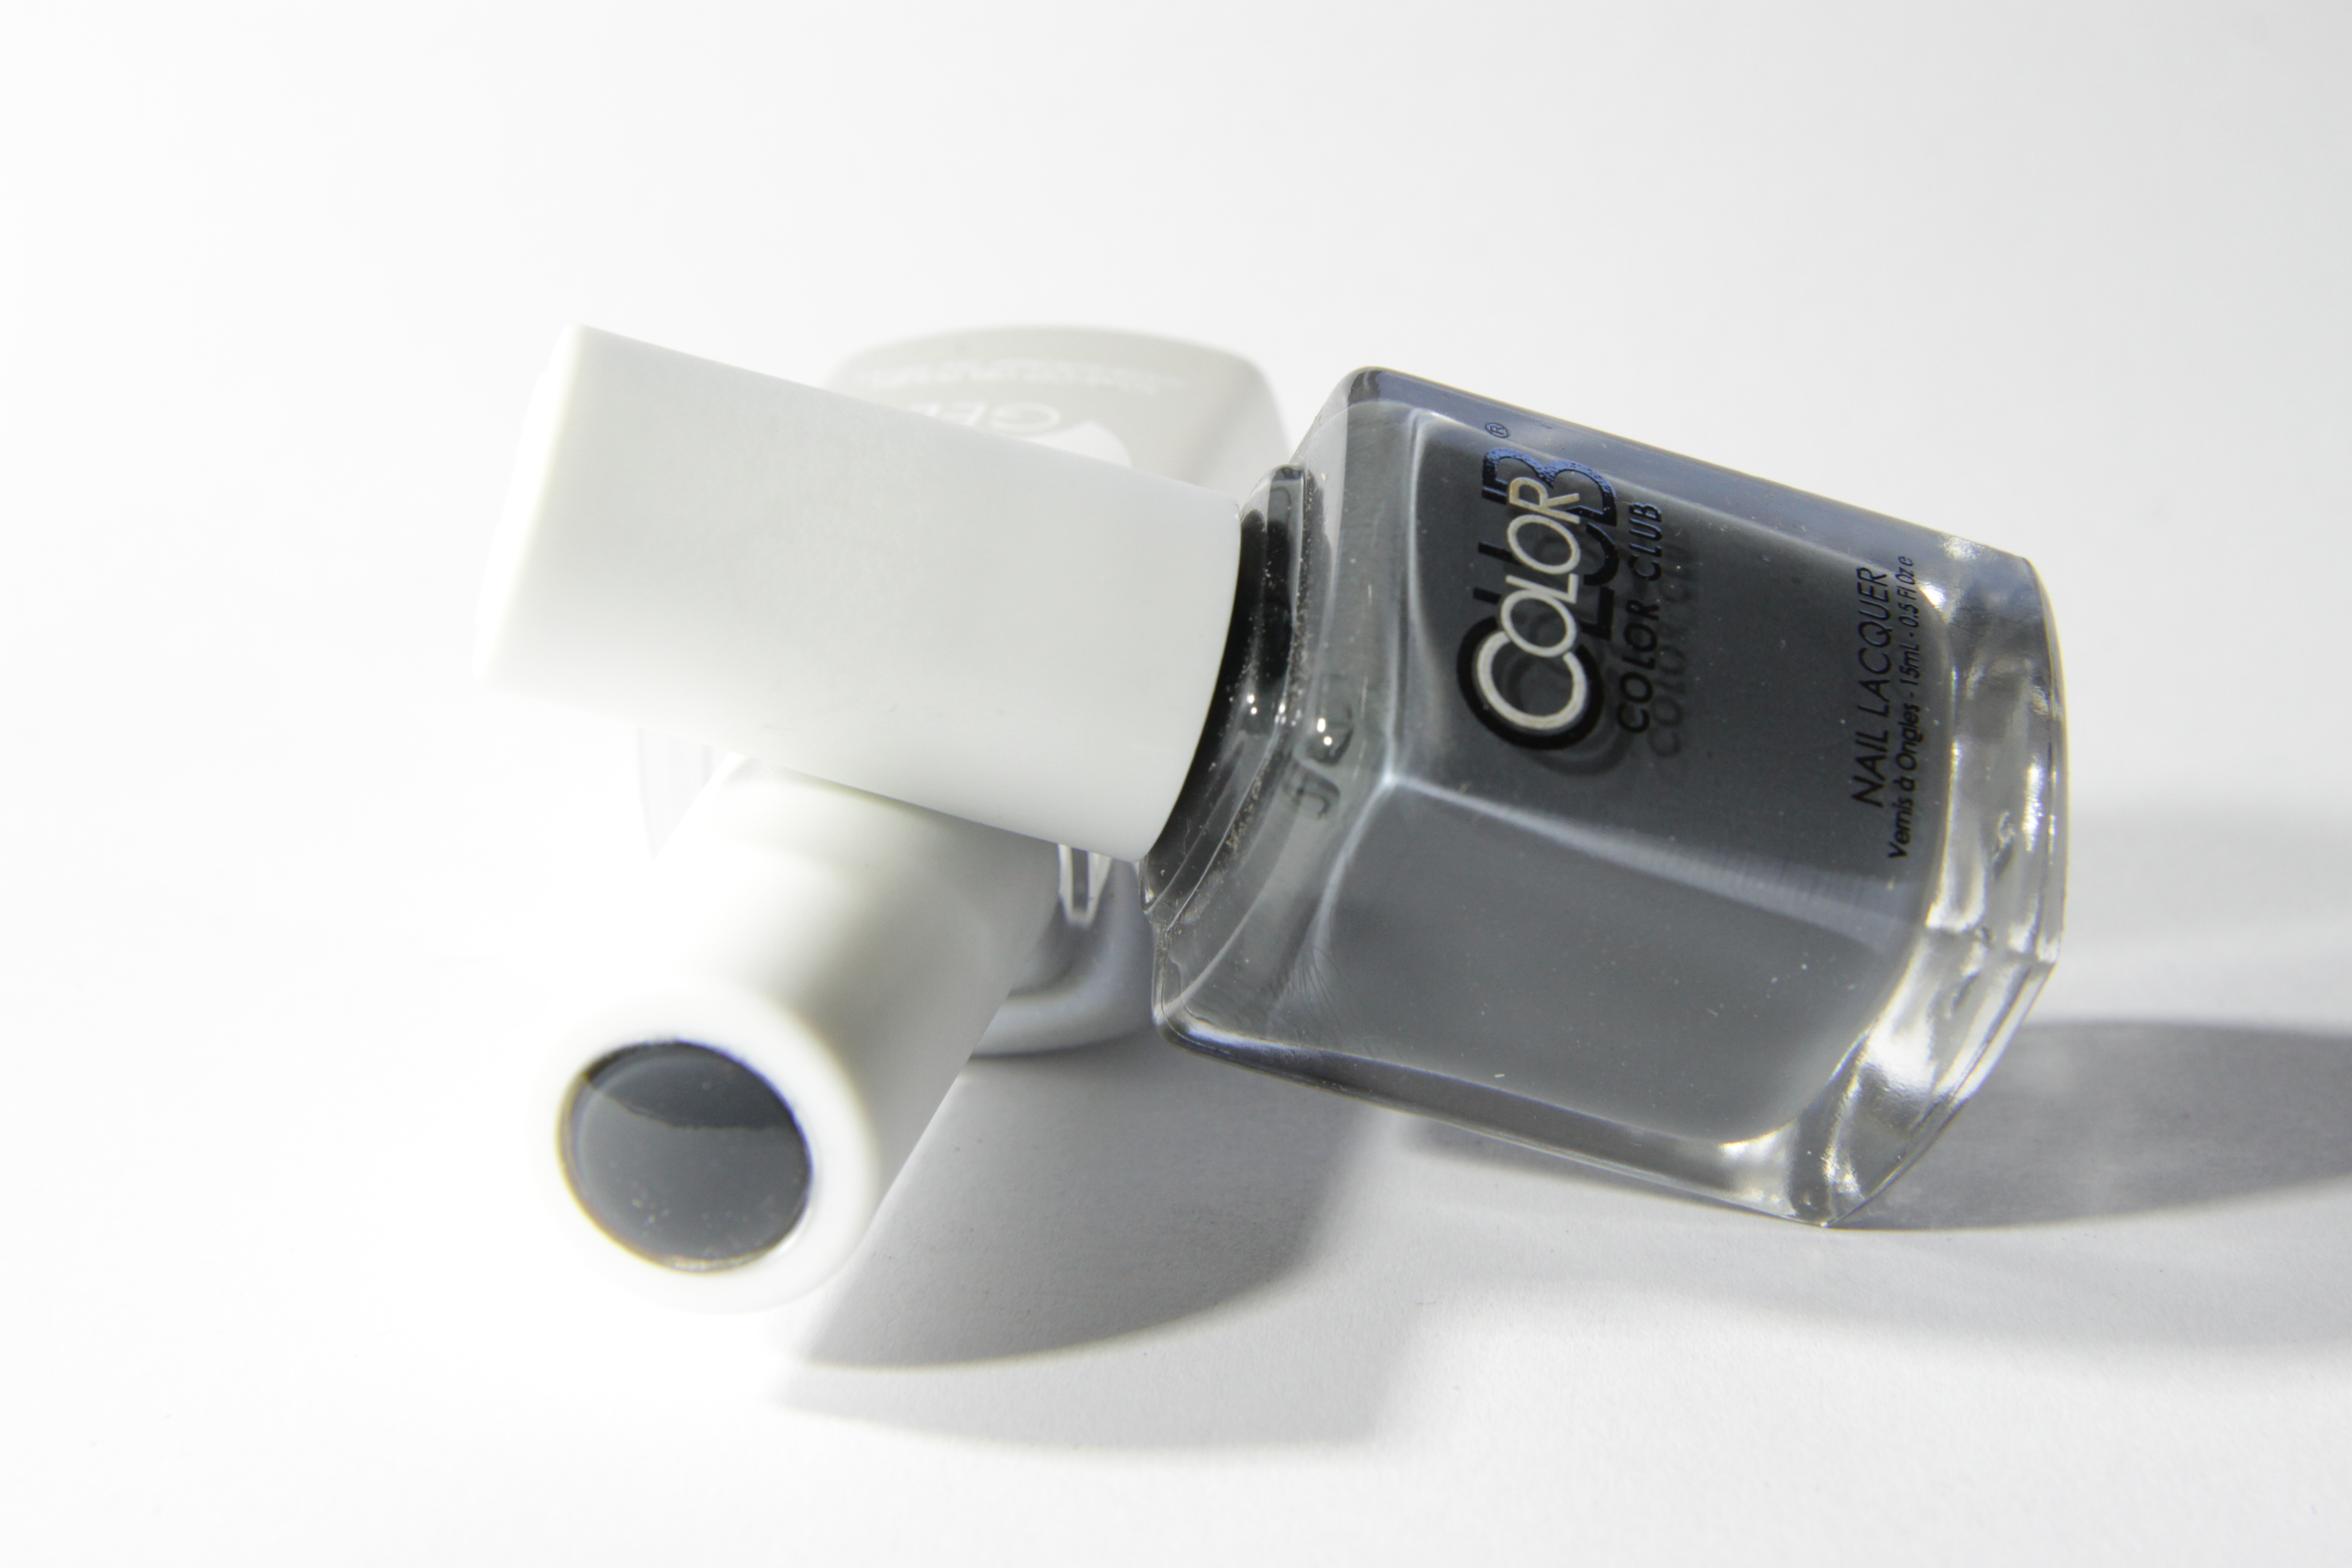 #0968 MUSE-ICAL Color Club Duo Nagellack Nail Lacquer and Soak-Off Gel Polish Anthrazit Grau grey